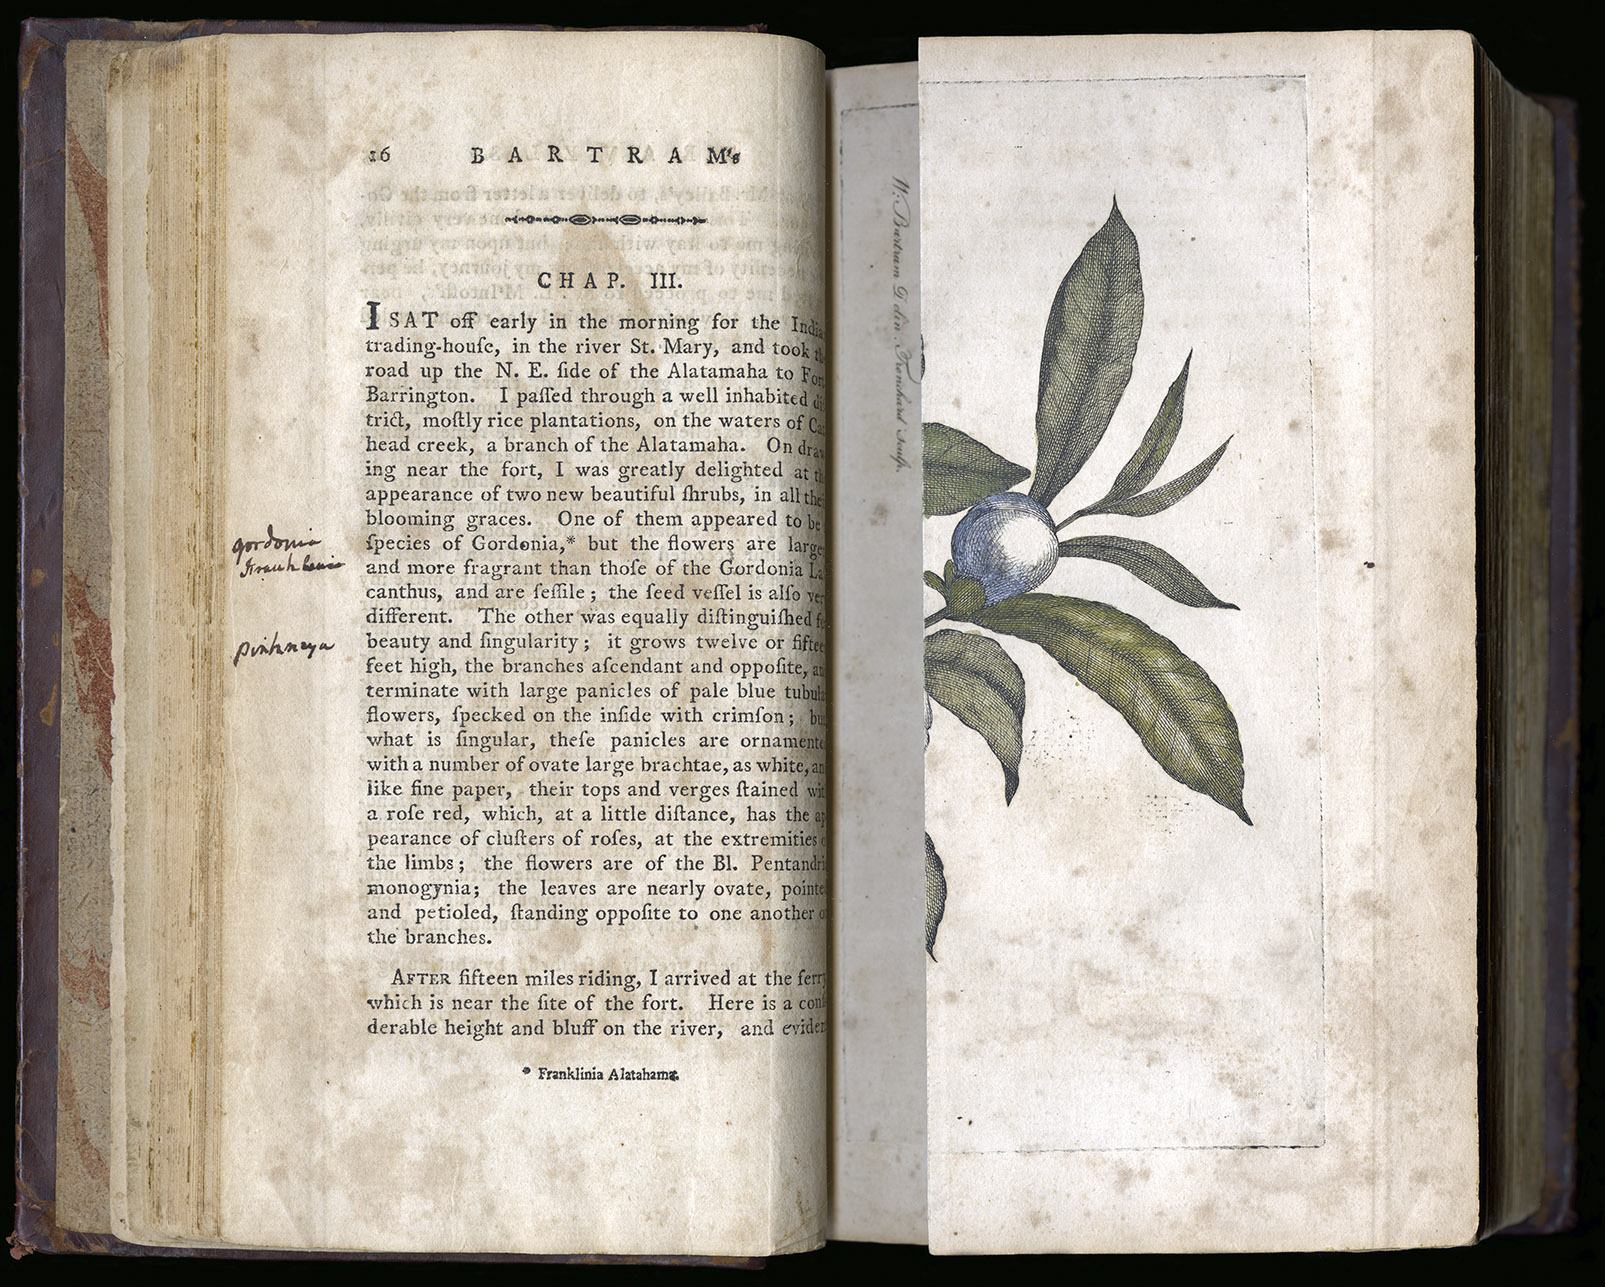 """Hamilton's note of the scientific name """" Gordonia Franklini """" for Franklinia references part of a rare illustrated collection of new plants from Paris, published by the botanist Charles Louis L'Héritier de Brutelle in 1791. And the genus name  Pinckney  was not published as a scientific name until 1803 by the French botanist André Michaux. Hamilton may have learned of both these then current scientific names from Michaux's  Flora . Note the Franklinia plate folded to the right (as shown in the image above). (Image courtesy of the Sterling Morton Library)"""